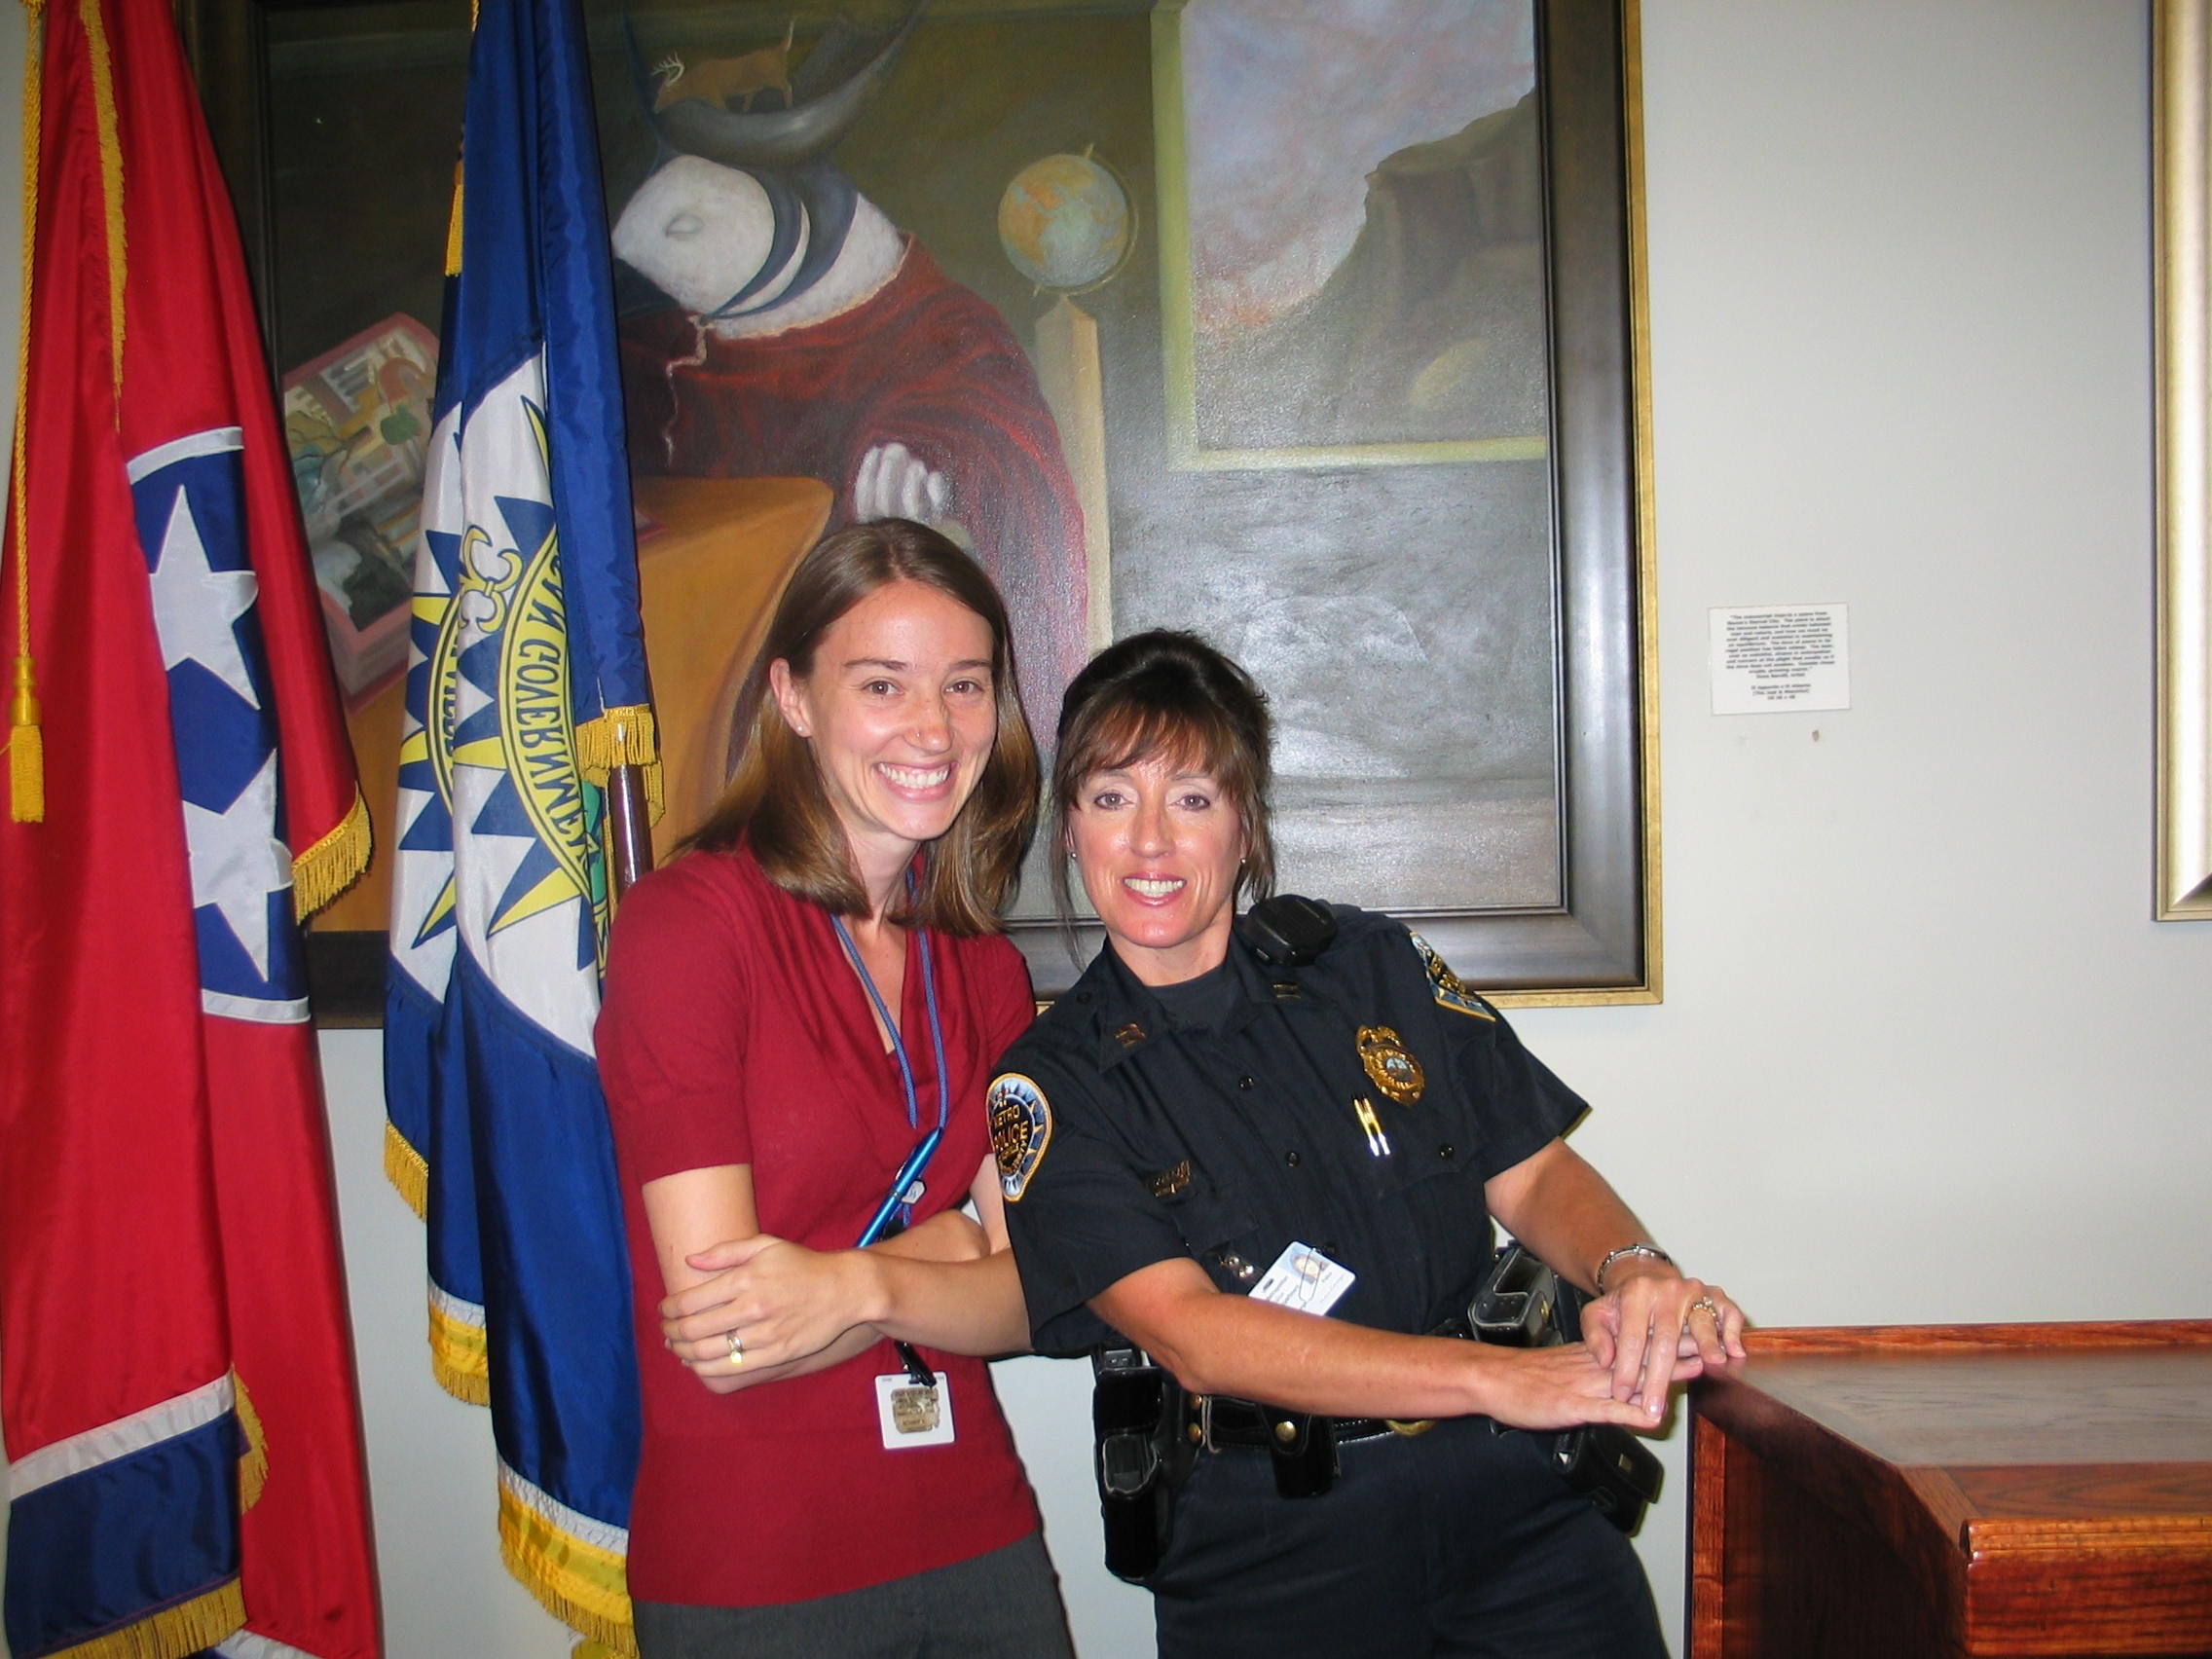 Becky and Capt. Donegan.jpg